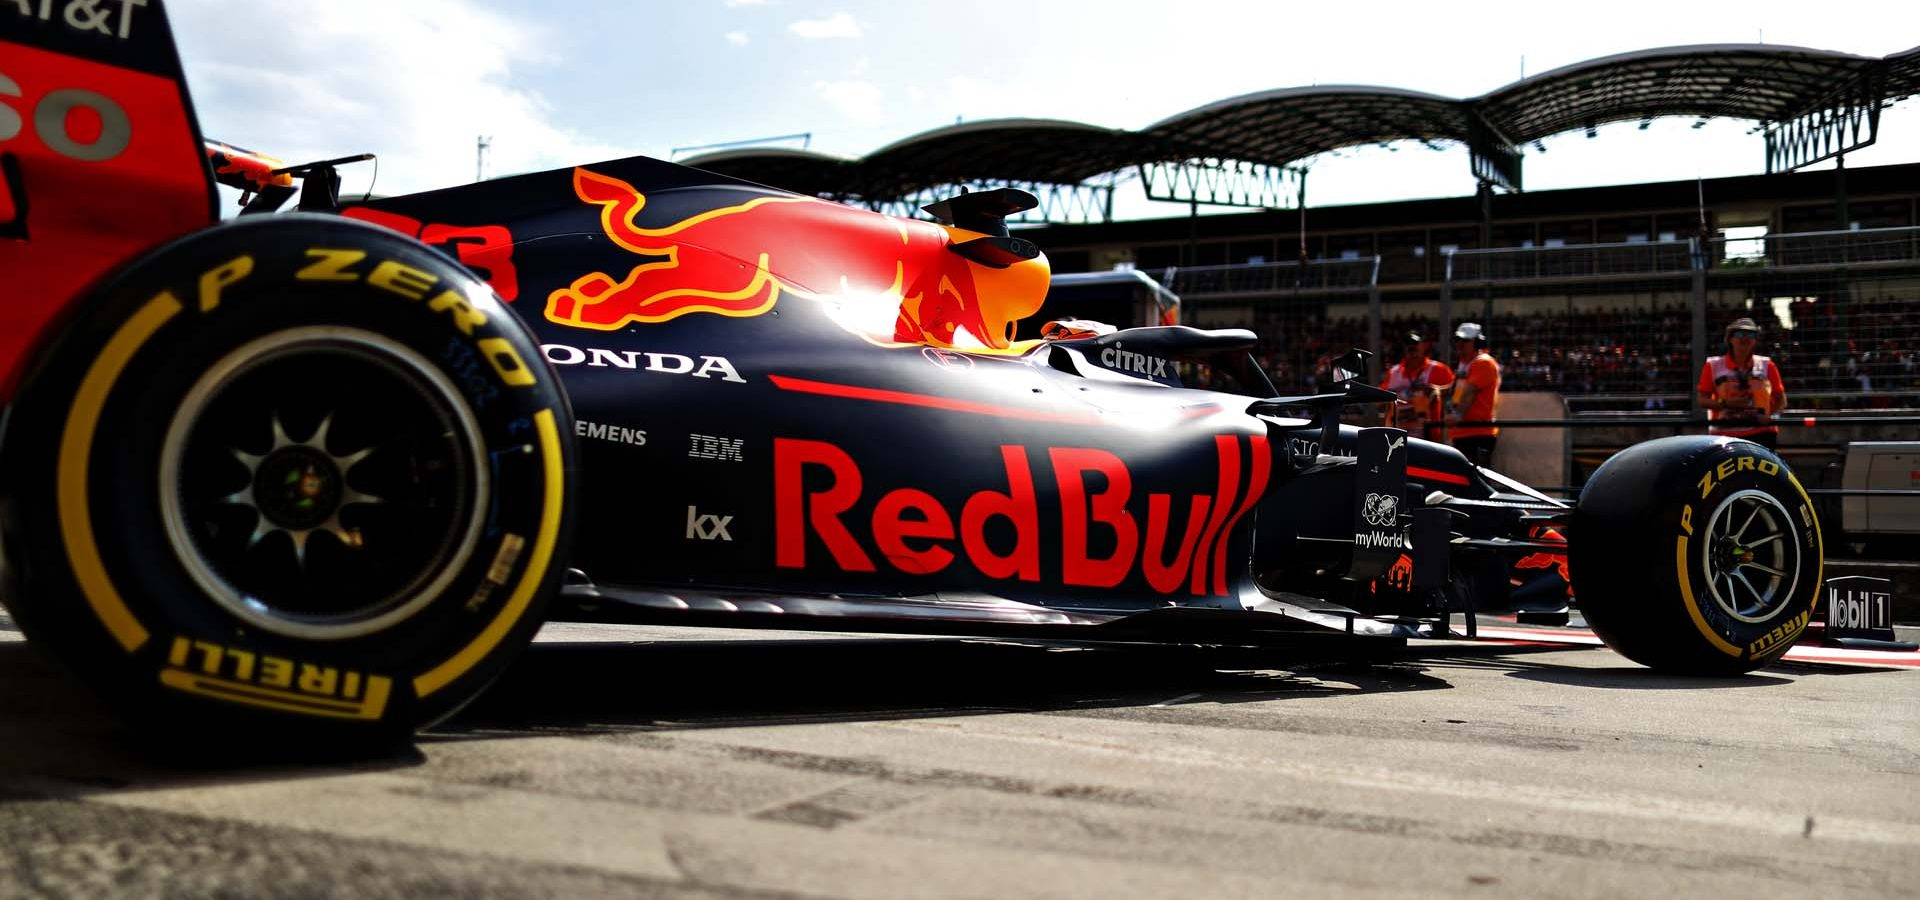 BUDAPEST, HUNGARY - AUGUST 03: Max Verstappen of the Netherlands driving the (33) Aston Martin Red Bull Racing RB15 leaves the garage during qualifying for the F1 Grand Prix of Hungary at Hungaroring on August 03, 2019 in Budapest, Hungary. (Photo by Mark Thompson/Getty Images) // Getty Images / Red Bull Content Pool  // AP-2157ANN6W1W11 // Usage for editorial use only // Please go to www.redbullcontentpool.com for further information. //